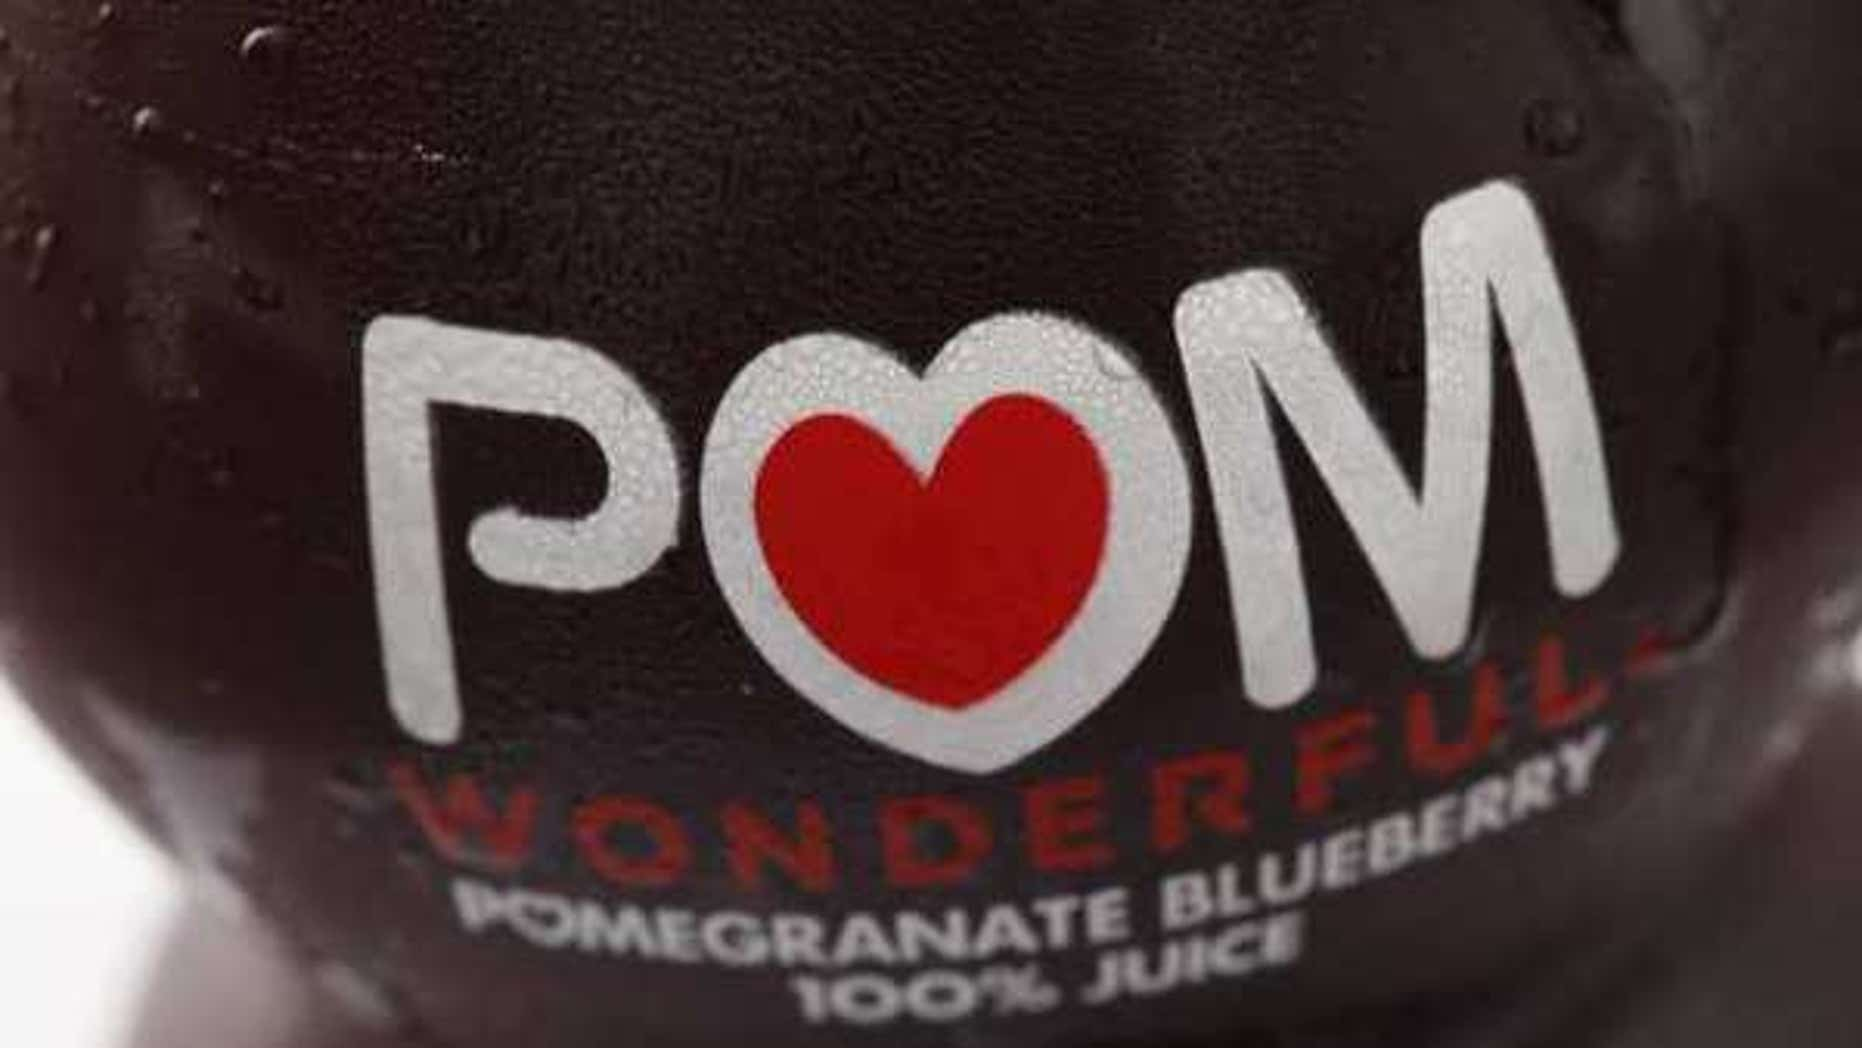 Displayed is a bottle of POM Wonderful juice in Philadelphia, Monday, Sept. 27, 2010. Regulators filed complaints against the makers of POM Wonderful Pomegranate Juice and other products on Monday, saying there's no science to support the company's claims that its products treat or prevent diseases such as prostate cancer and erectile dysfunction. (AP Photo/Matt Rourke)